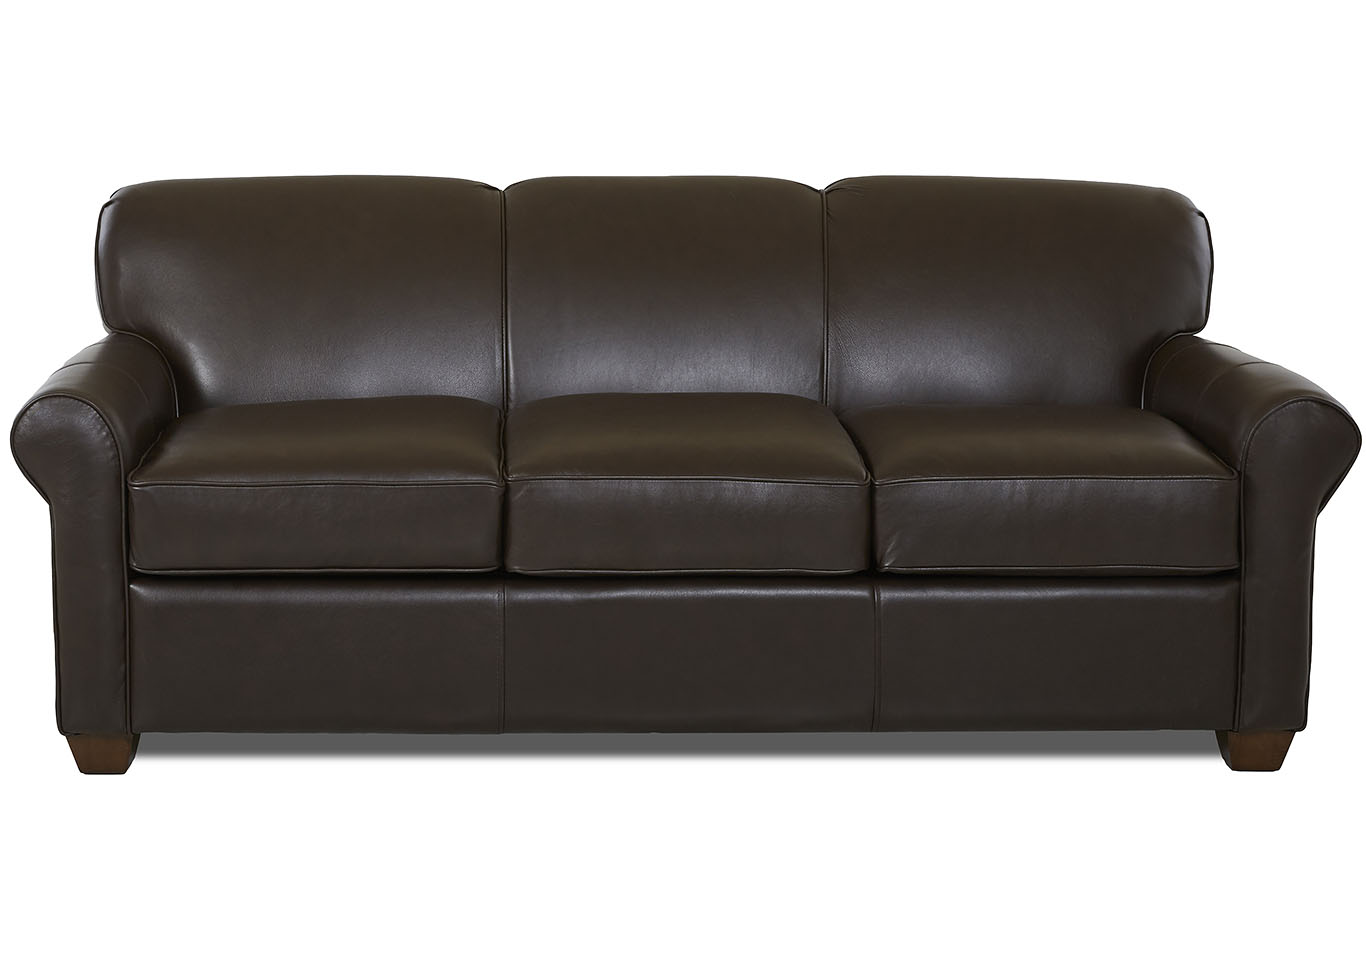 Mayhew Durango Expresso Brown Leather Sleeper Sofa,Klaussner Home Furnishings